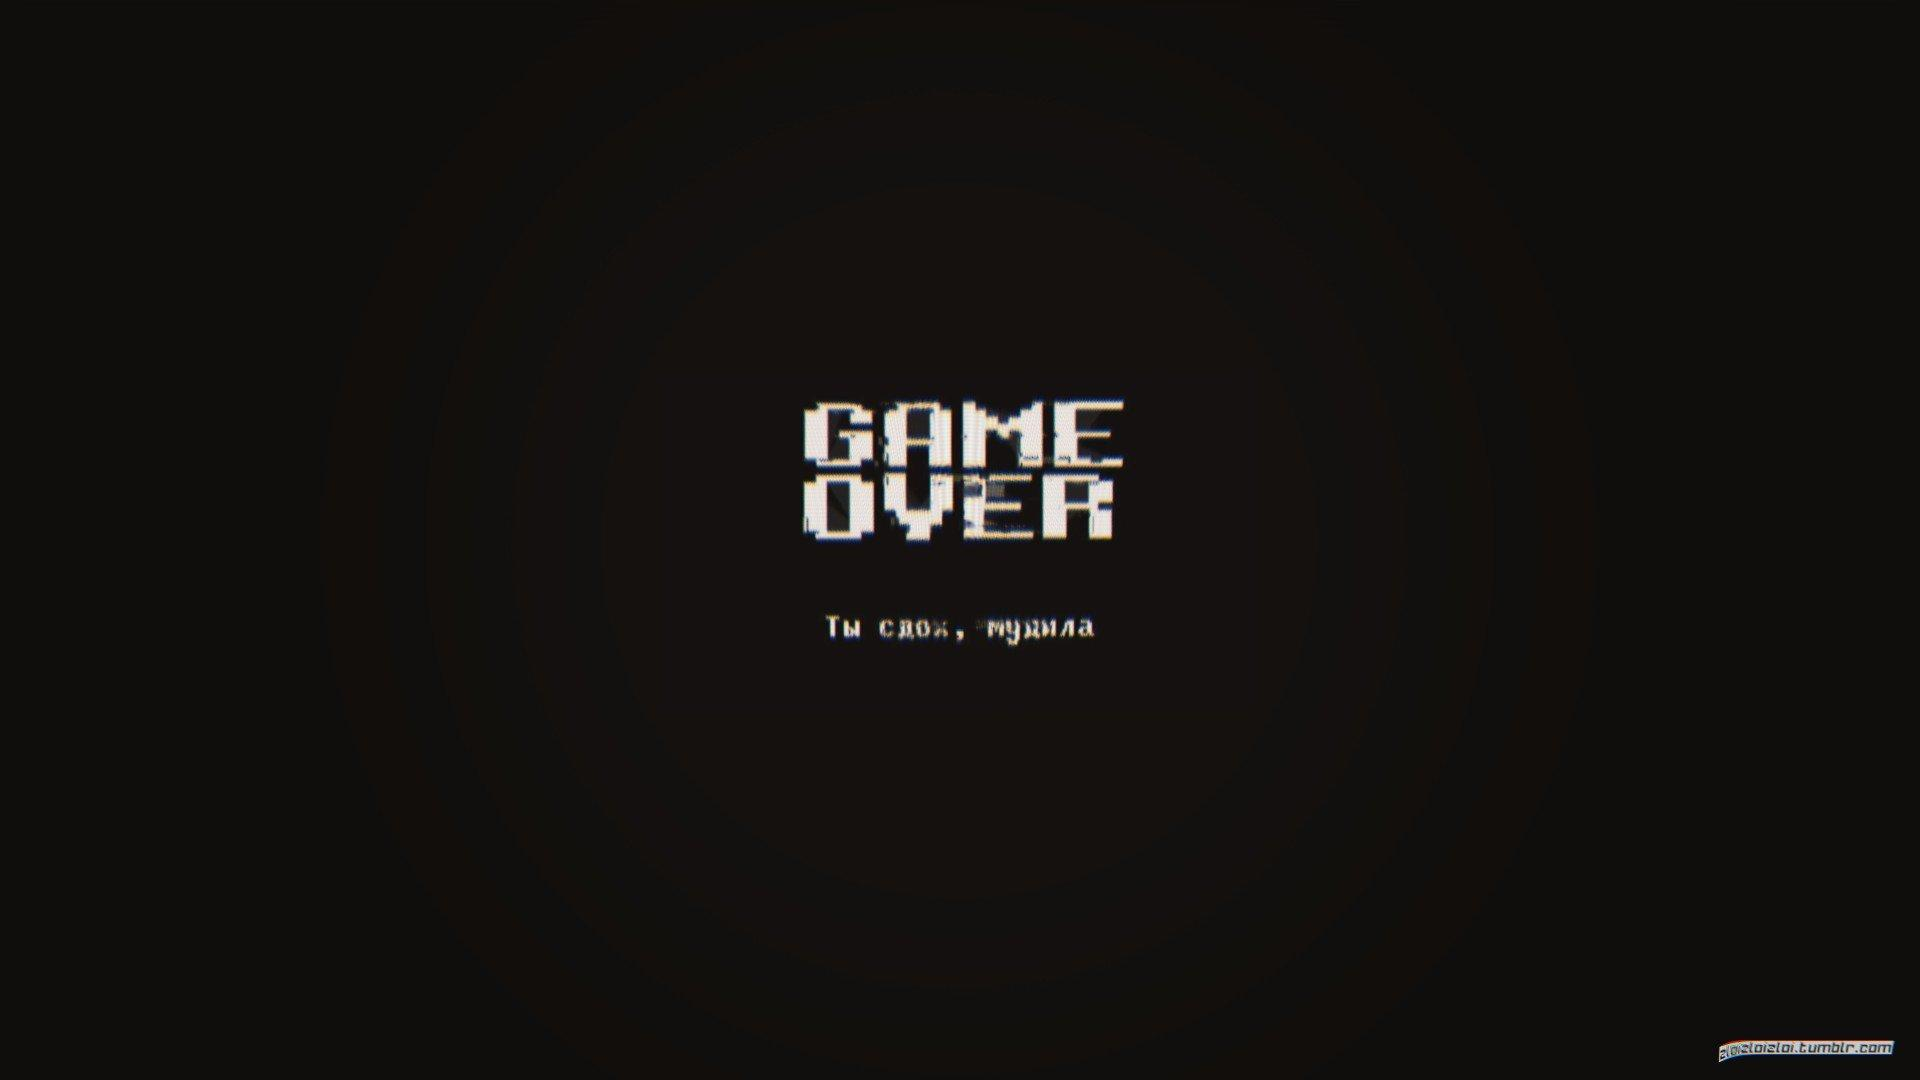 glitch art, Minimalism, Dark, GAME OVER, Abstract HD Wallpapers